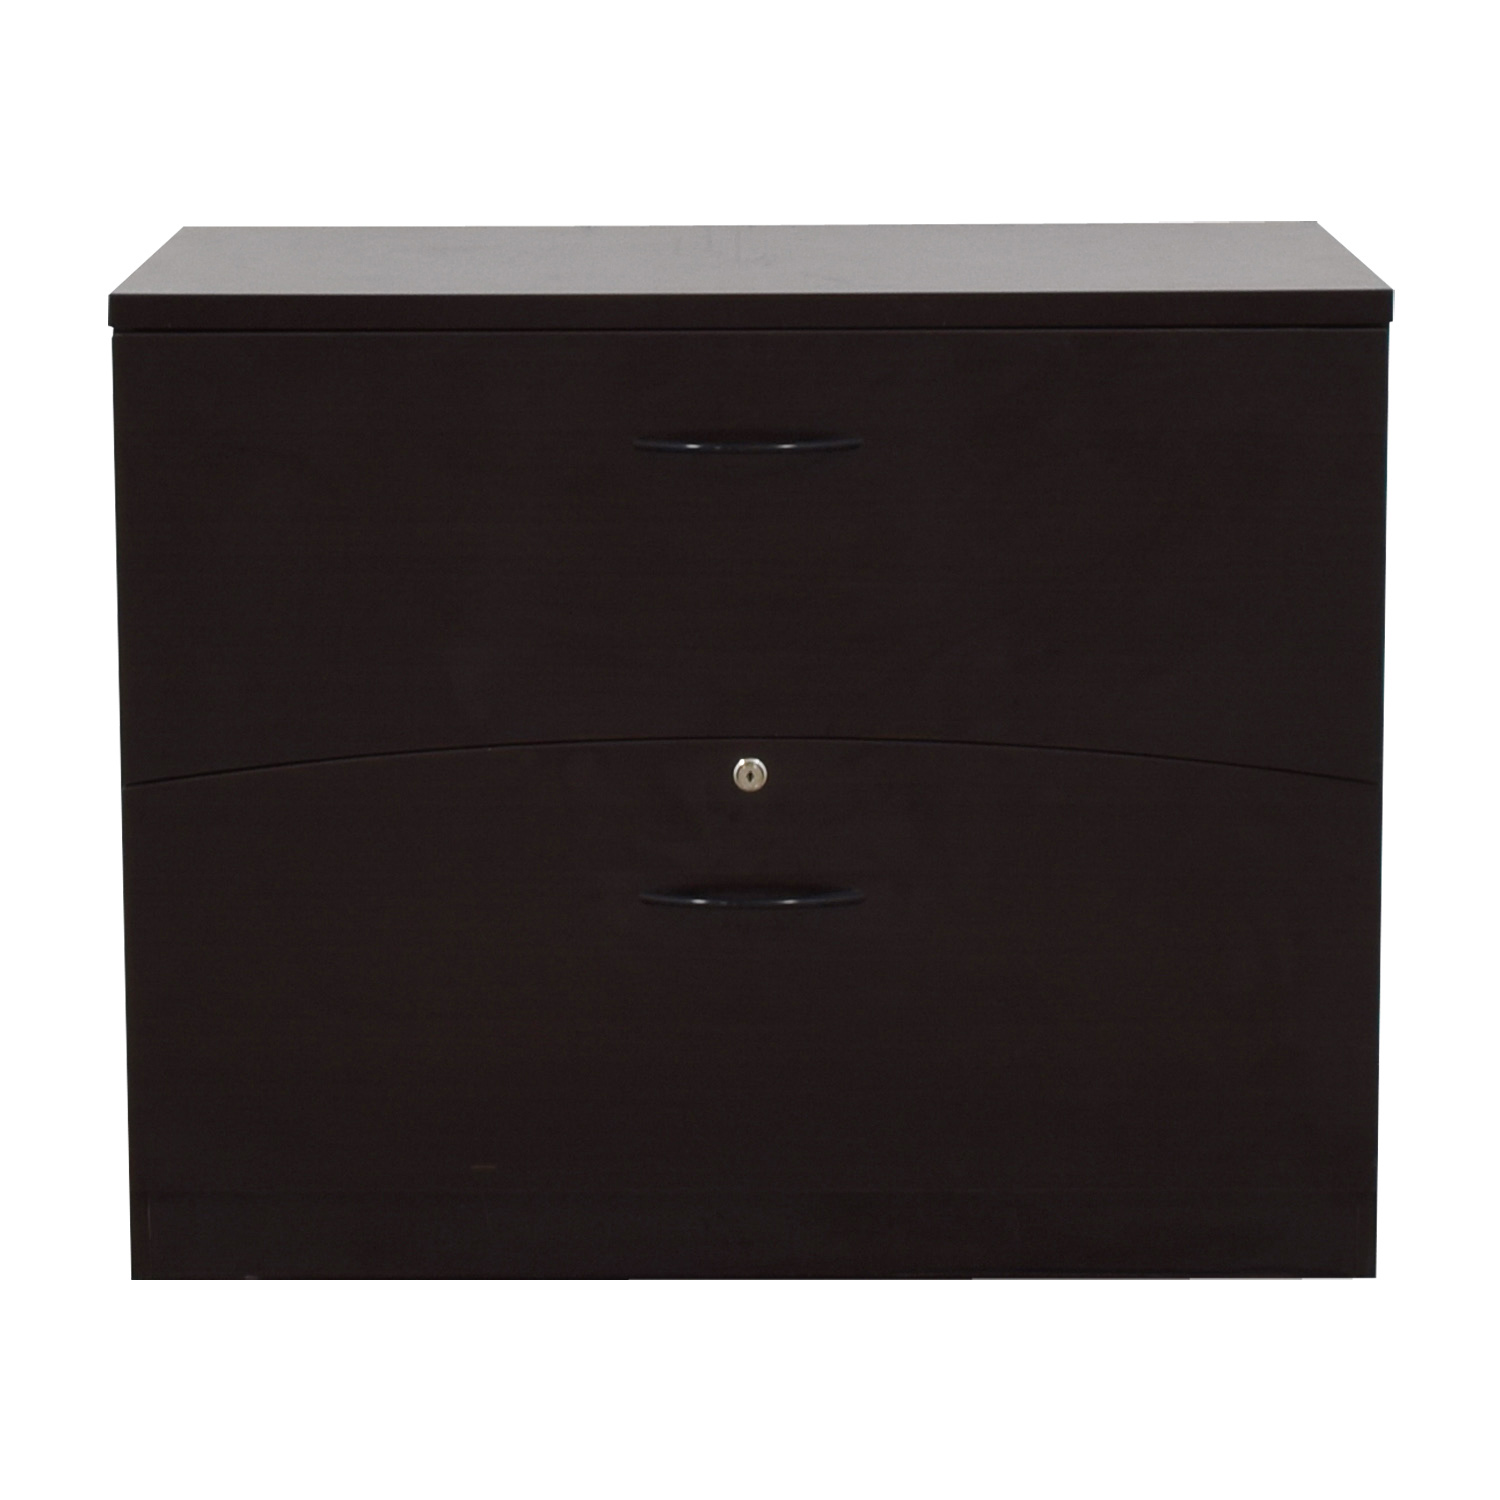 Mayline Mayline Two-Drawer Lateral File Cabinet price